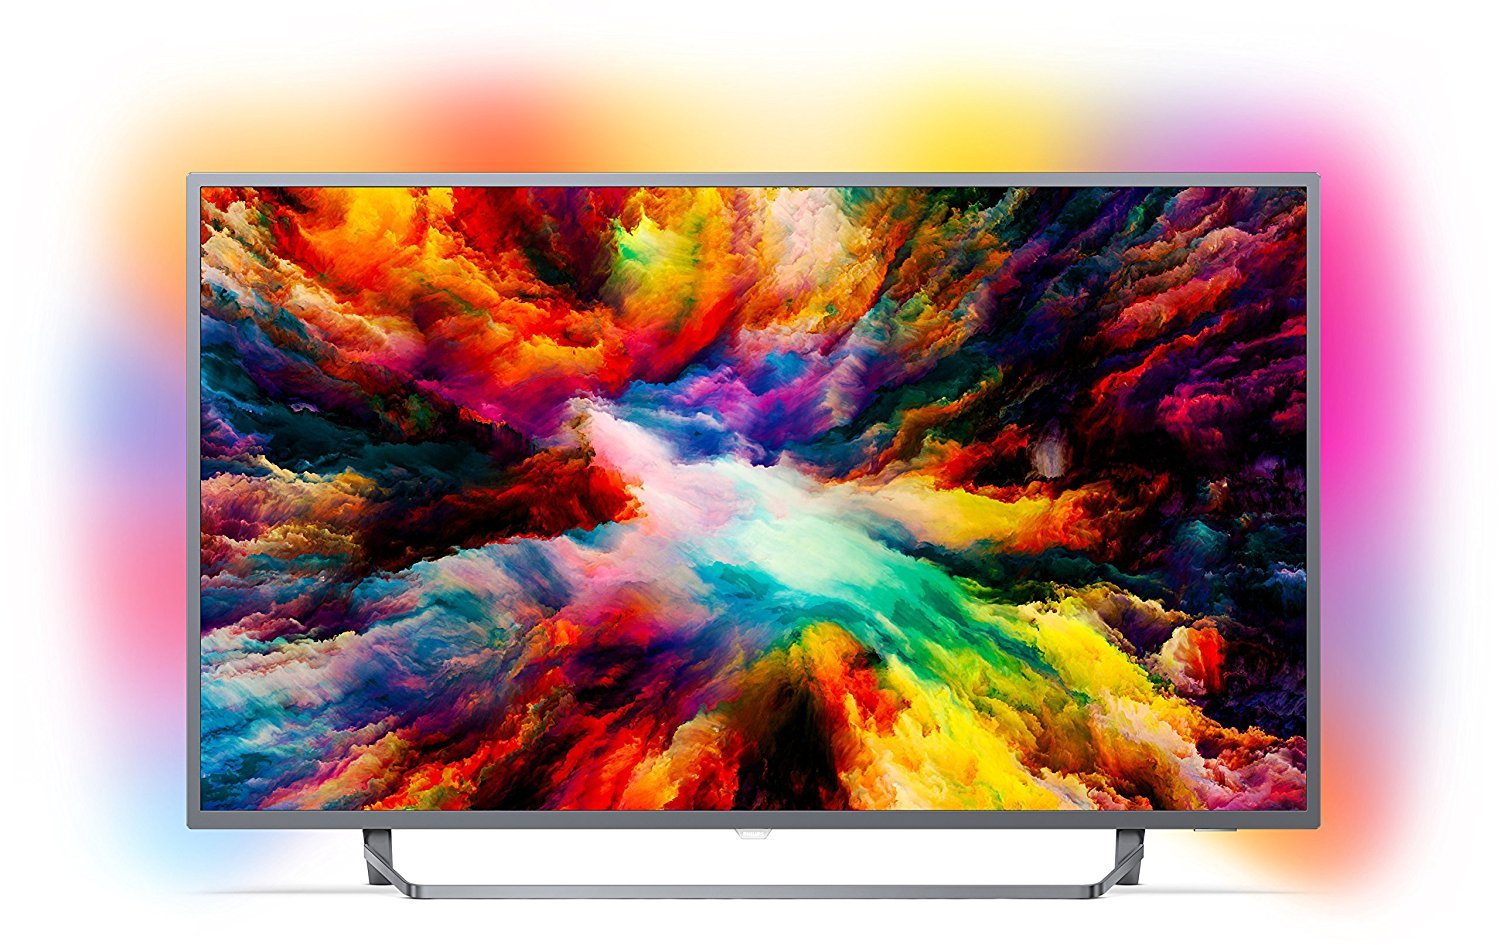 Philips 65PUS7303/12 55-Inch 4K Ultra HD Android Smart TV with 3